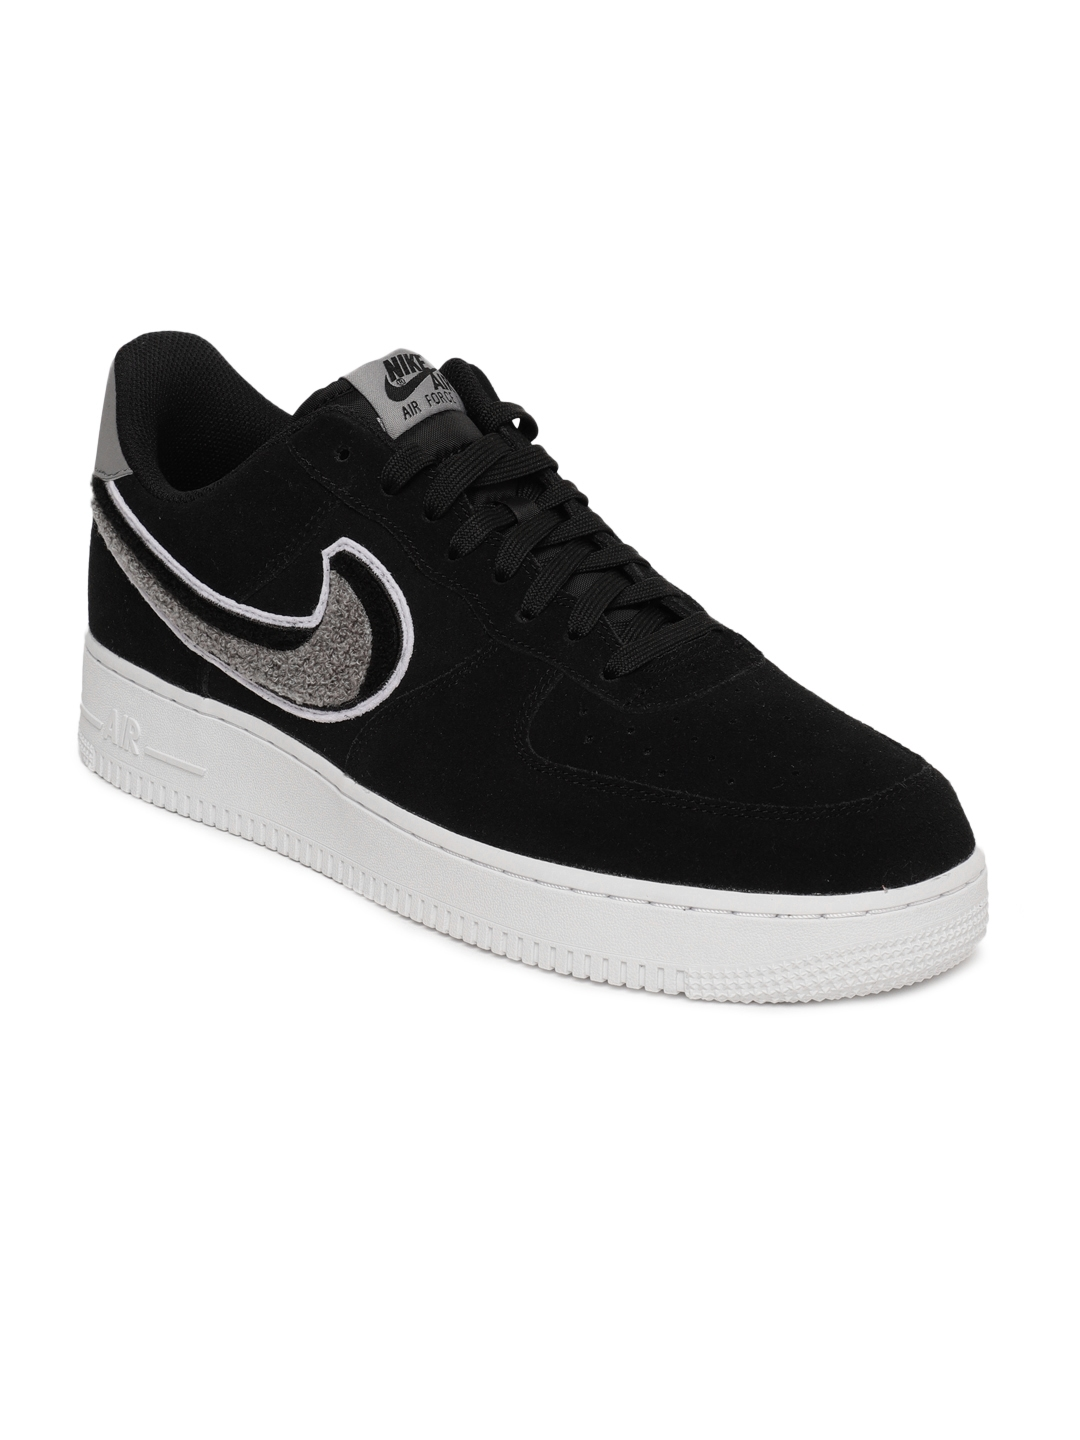 8b266f502fc0 Buy Nike Men Black Air Force 1  07 LV8 Suede Basketball Shoes ...